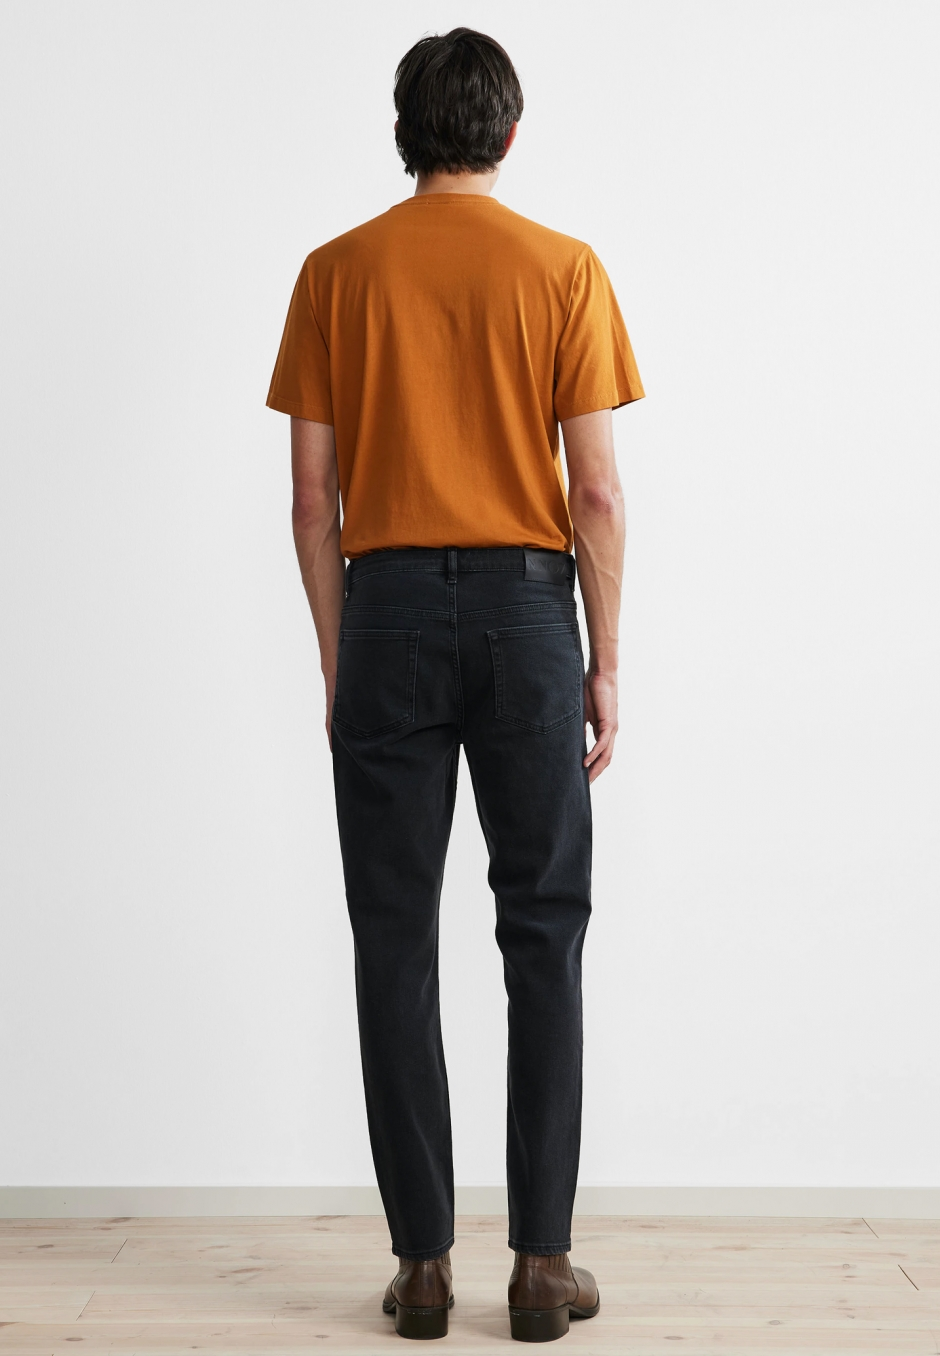 NN07 Johnny 1862 Relaxed Cotton Jeans